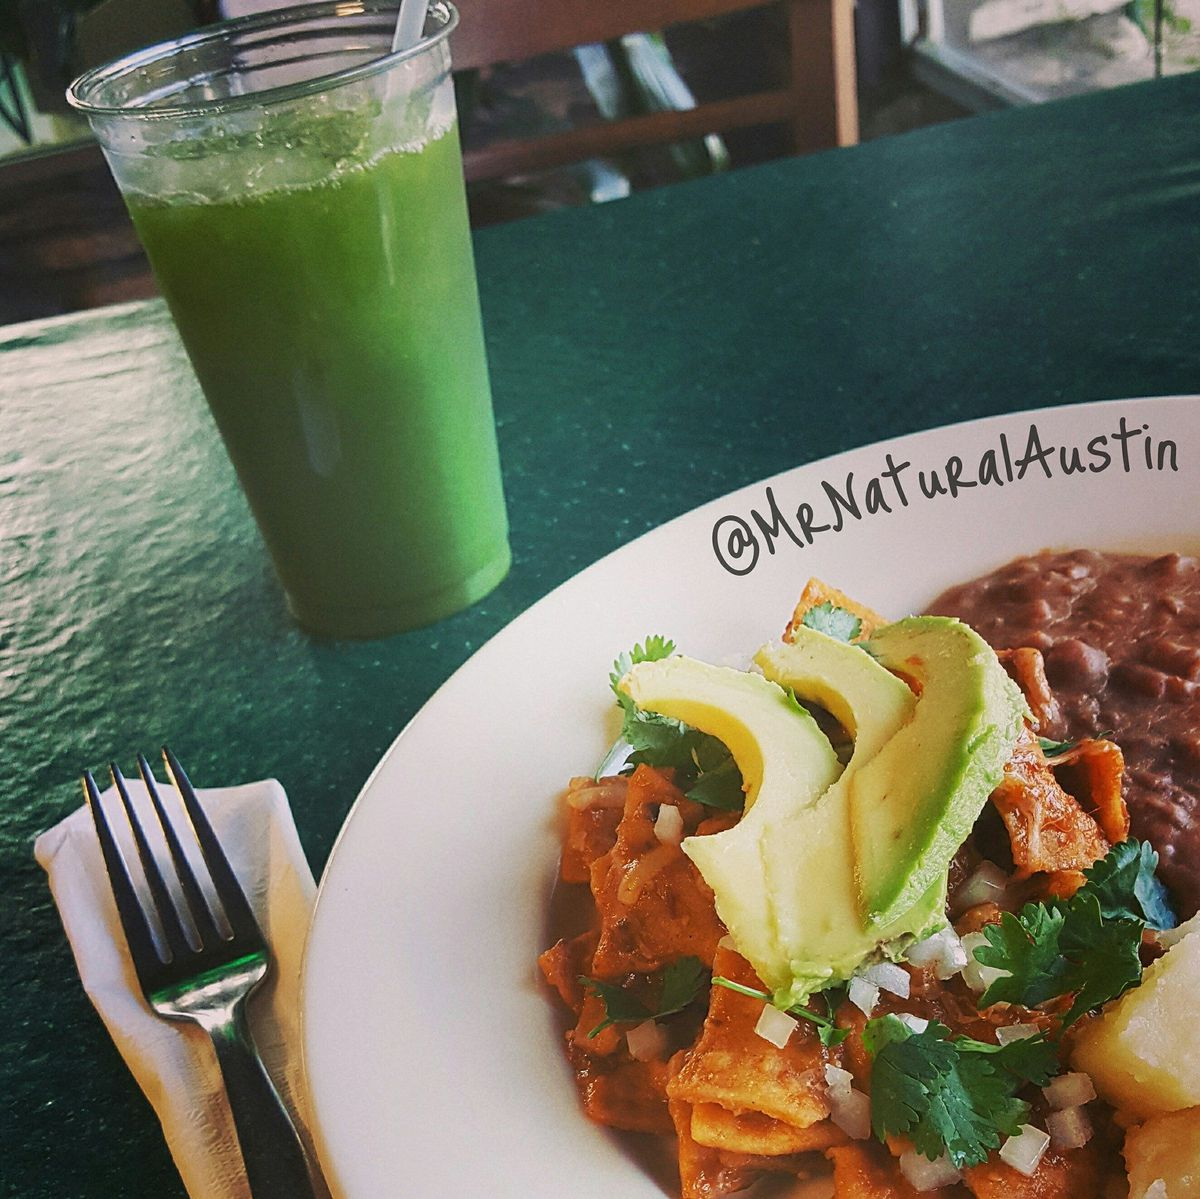 Green drink, closeup of plate with Tex-Mex and avocado slices on plate